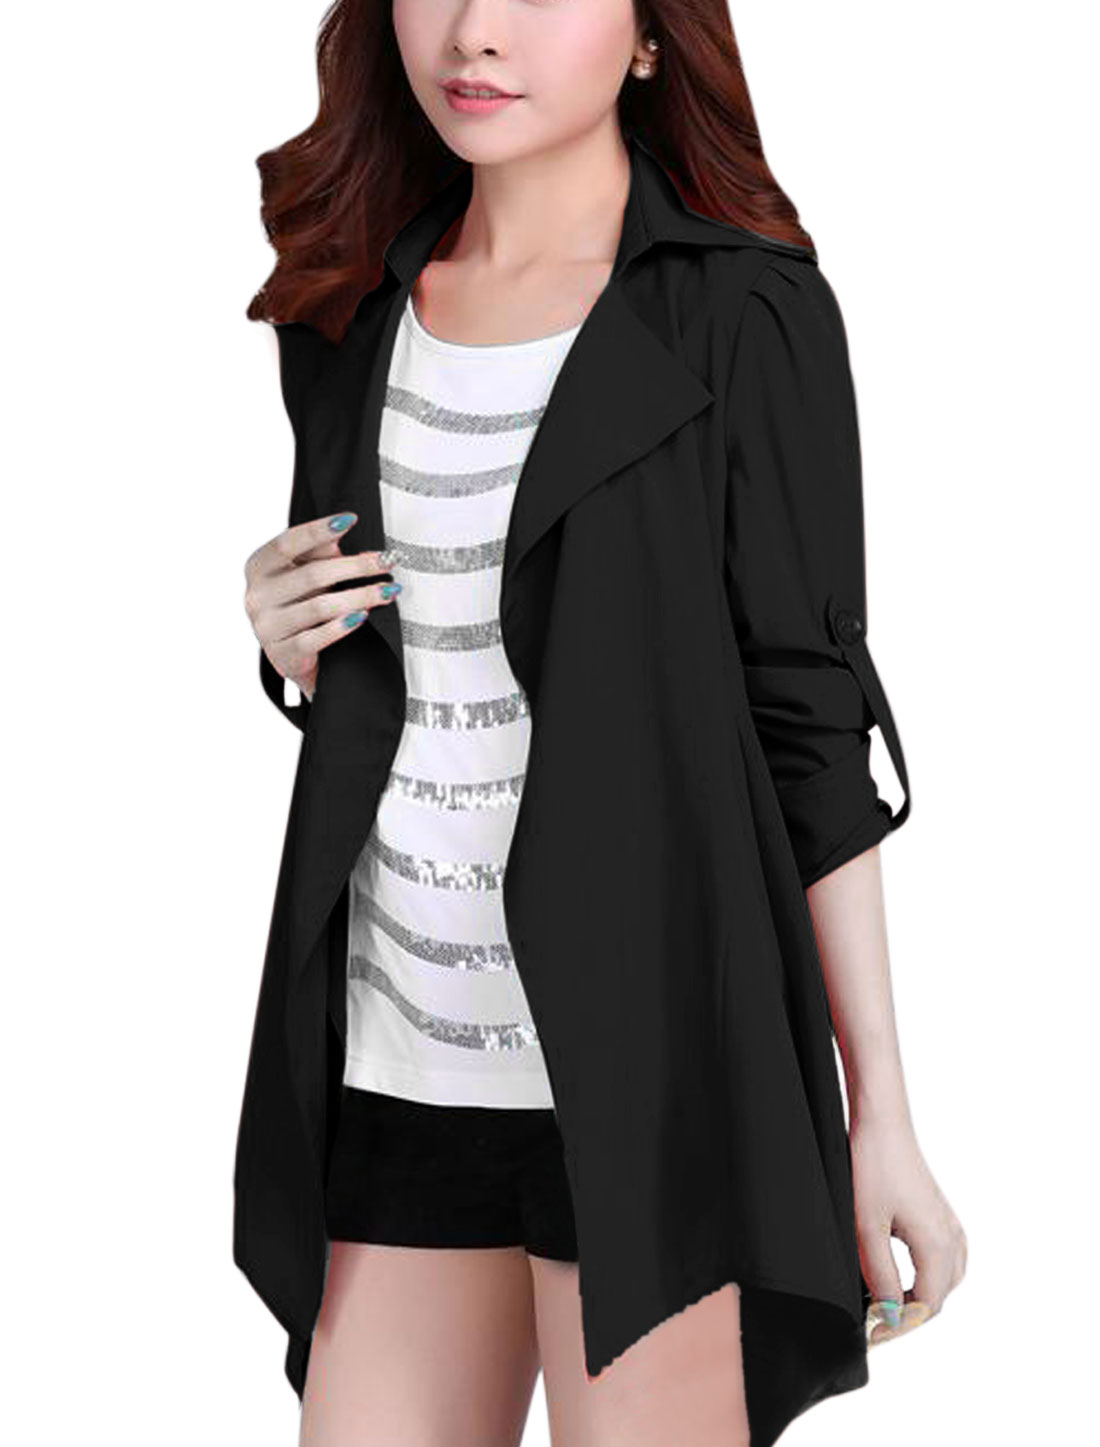 Cozy Fit Front Opening Fashion Casual Trench Coat for Lady Black L